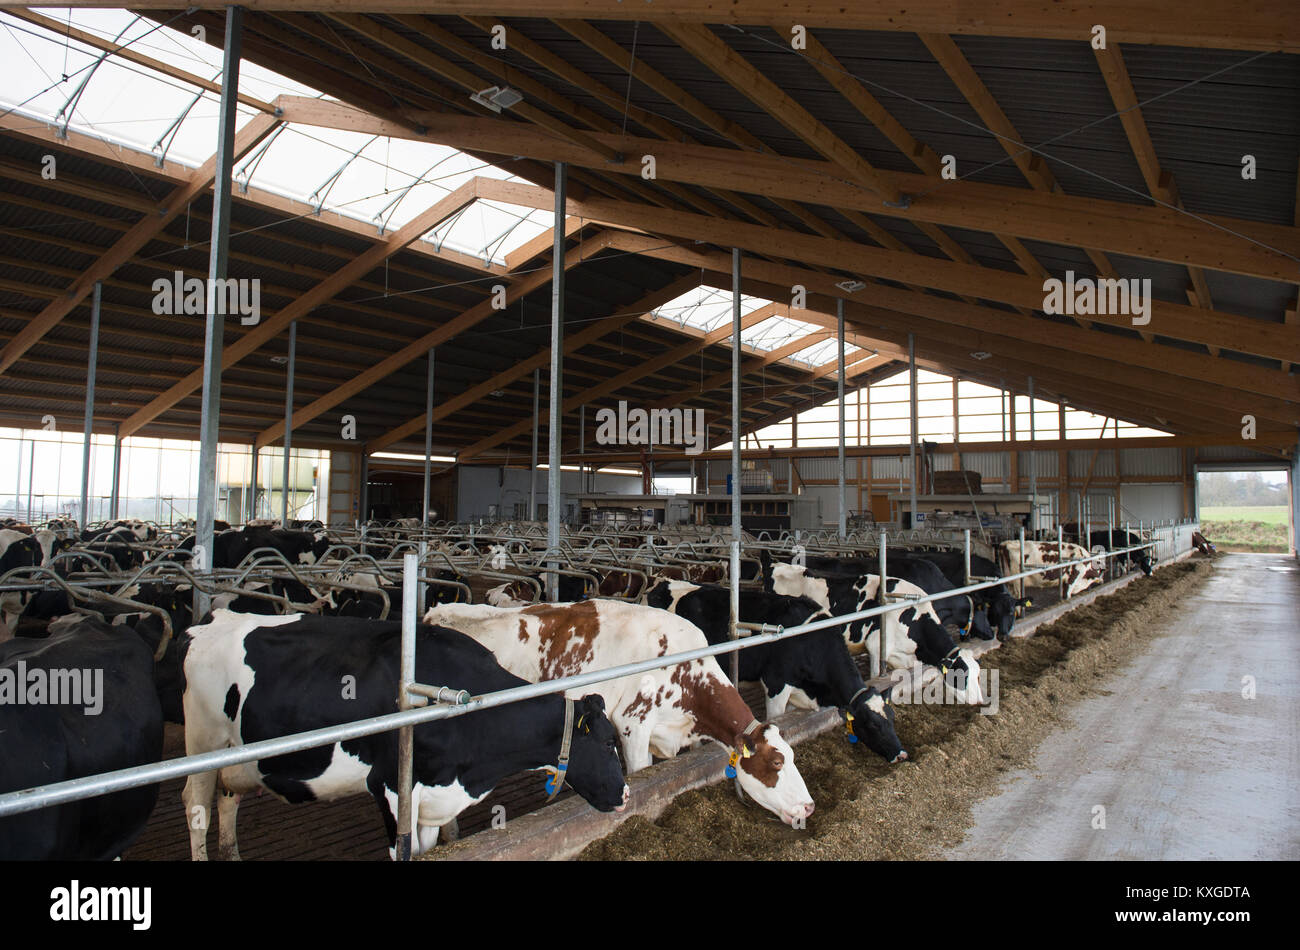 Neunkirchen-Seelscheid, Germany. 08th Jan, 2018. Farmer Marcel Andree's cows eating grass silage in a barn in - Stock Image